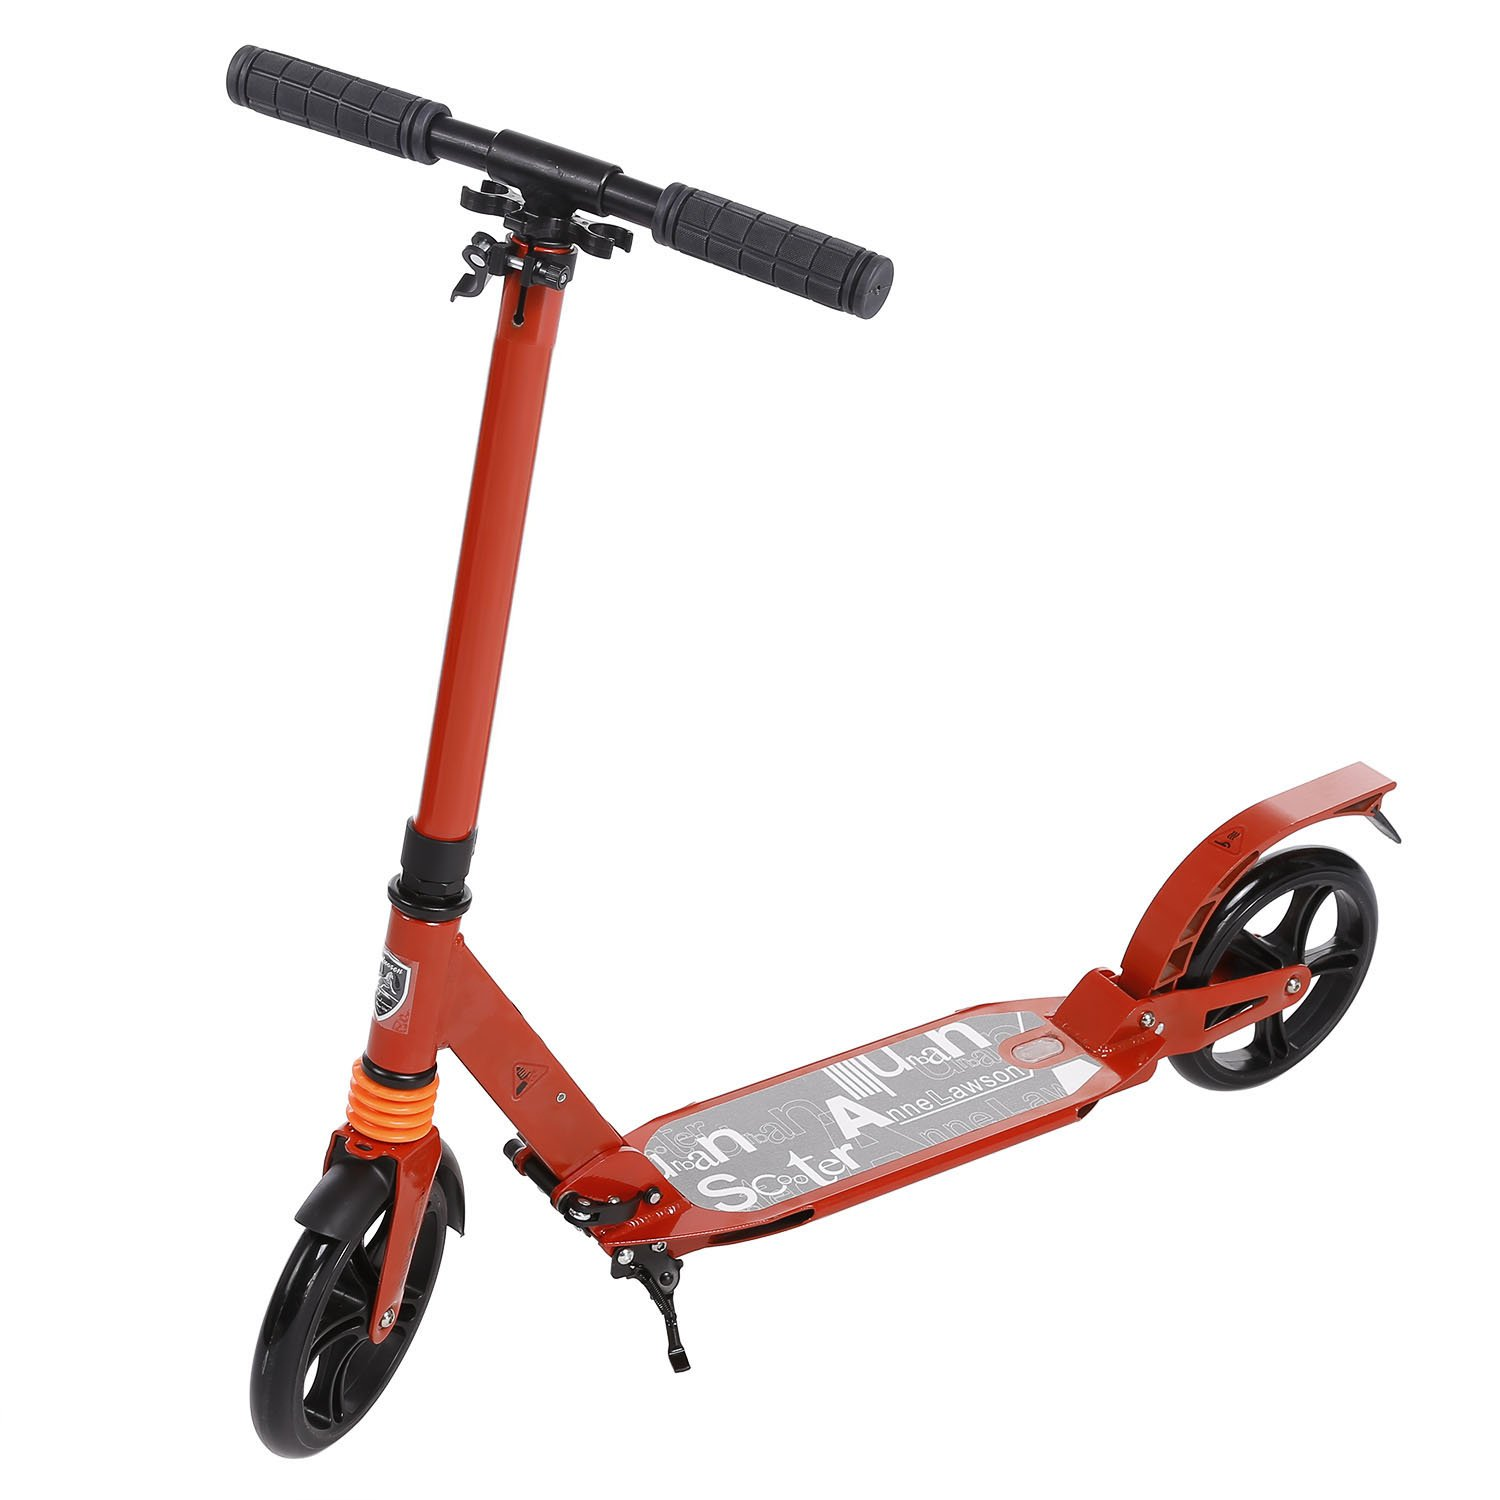 Dicesnow Adult Kick Scooter 220lbs Weight With 2 Big Wheels Rear Brake Easy-Folding Adjustable Handlebar Street Push Scooter for City Urban Riders